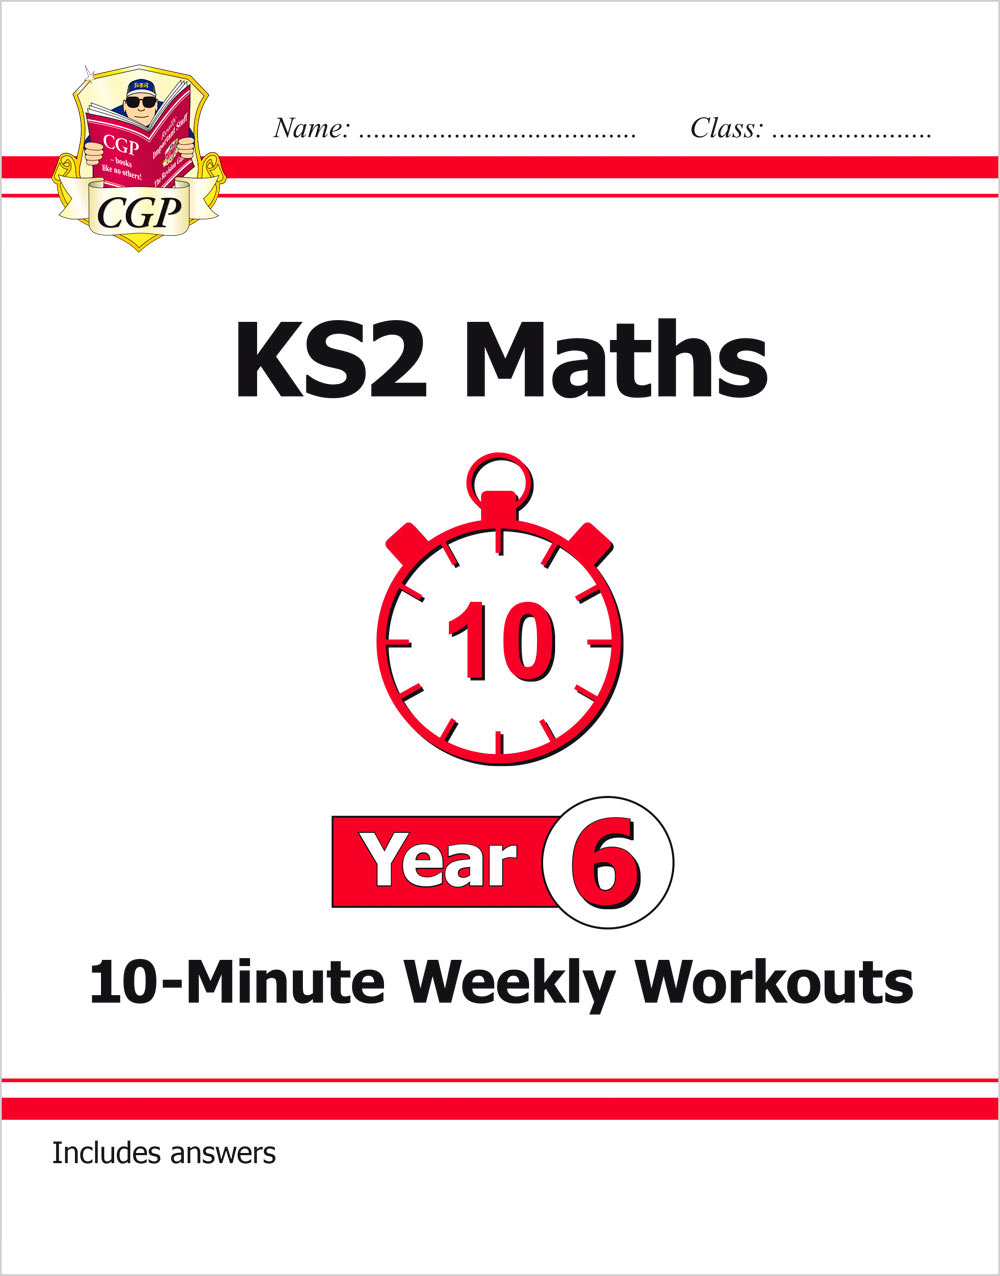 M6XW21 - KS2 Maths 10-Minute Weekly Workouts - Year 6